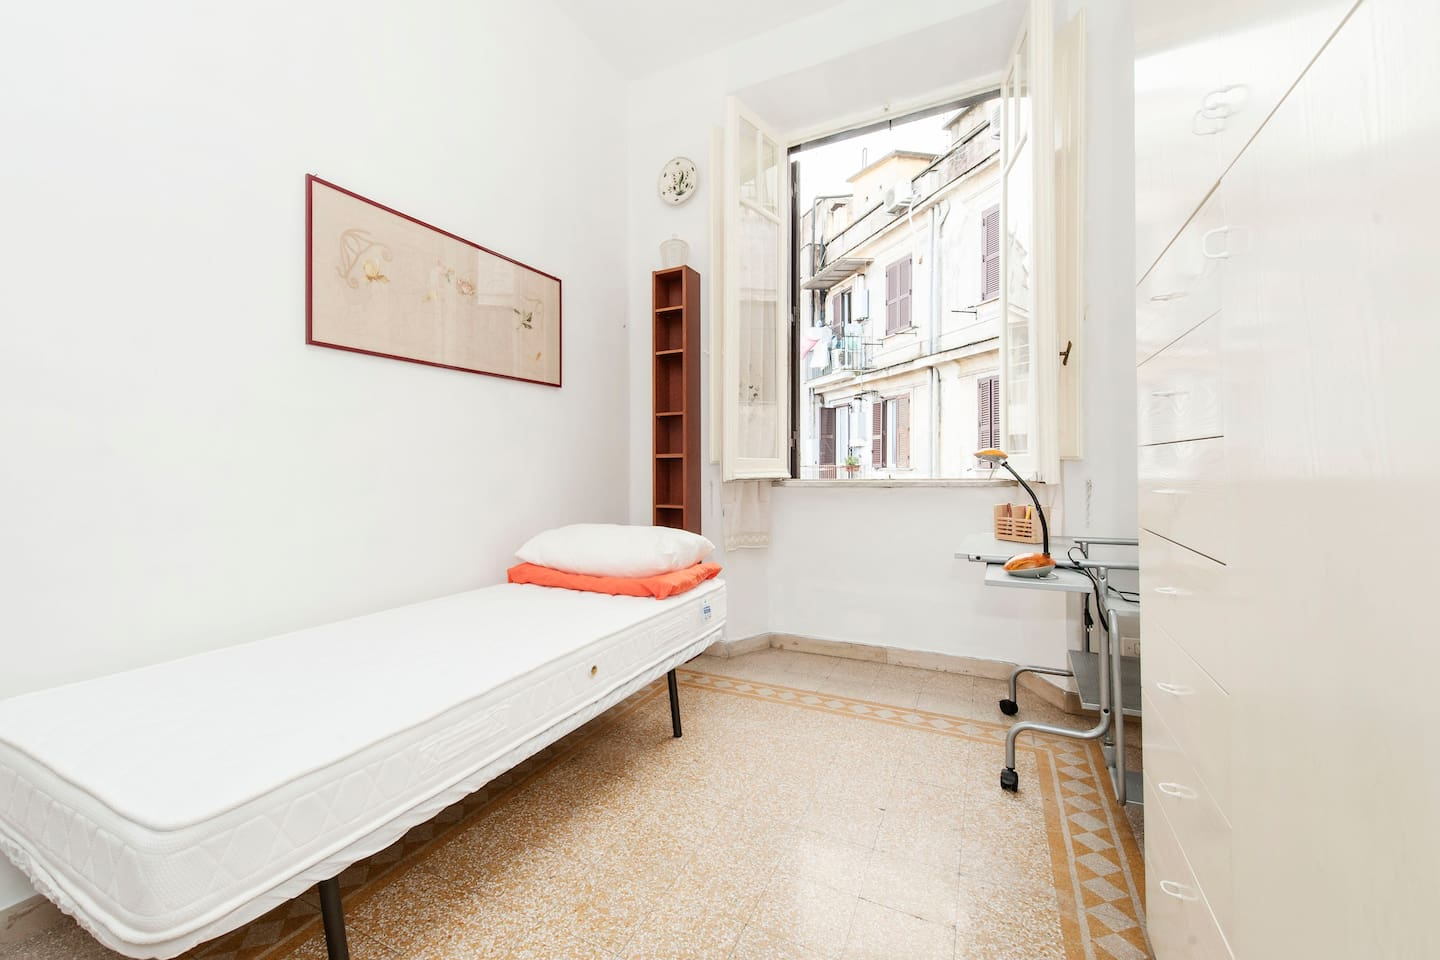 Colosseum - Center of Rome - Room * WiFi & Italian Breakfast* Double-sided Summer-Winter spring mattress. Professionally washed. Bedding. Large bathroom towels.  Small-size furniture may vary according to the number of guests.